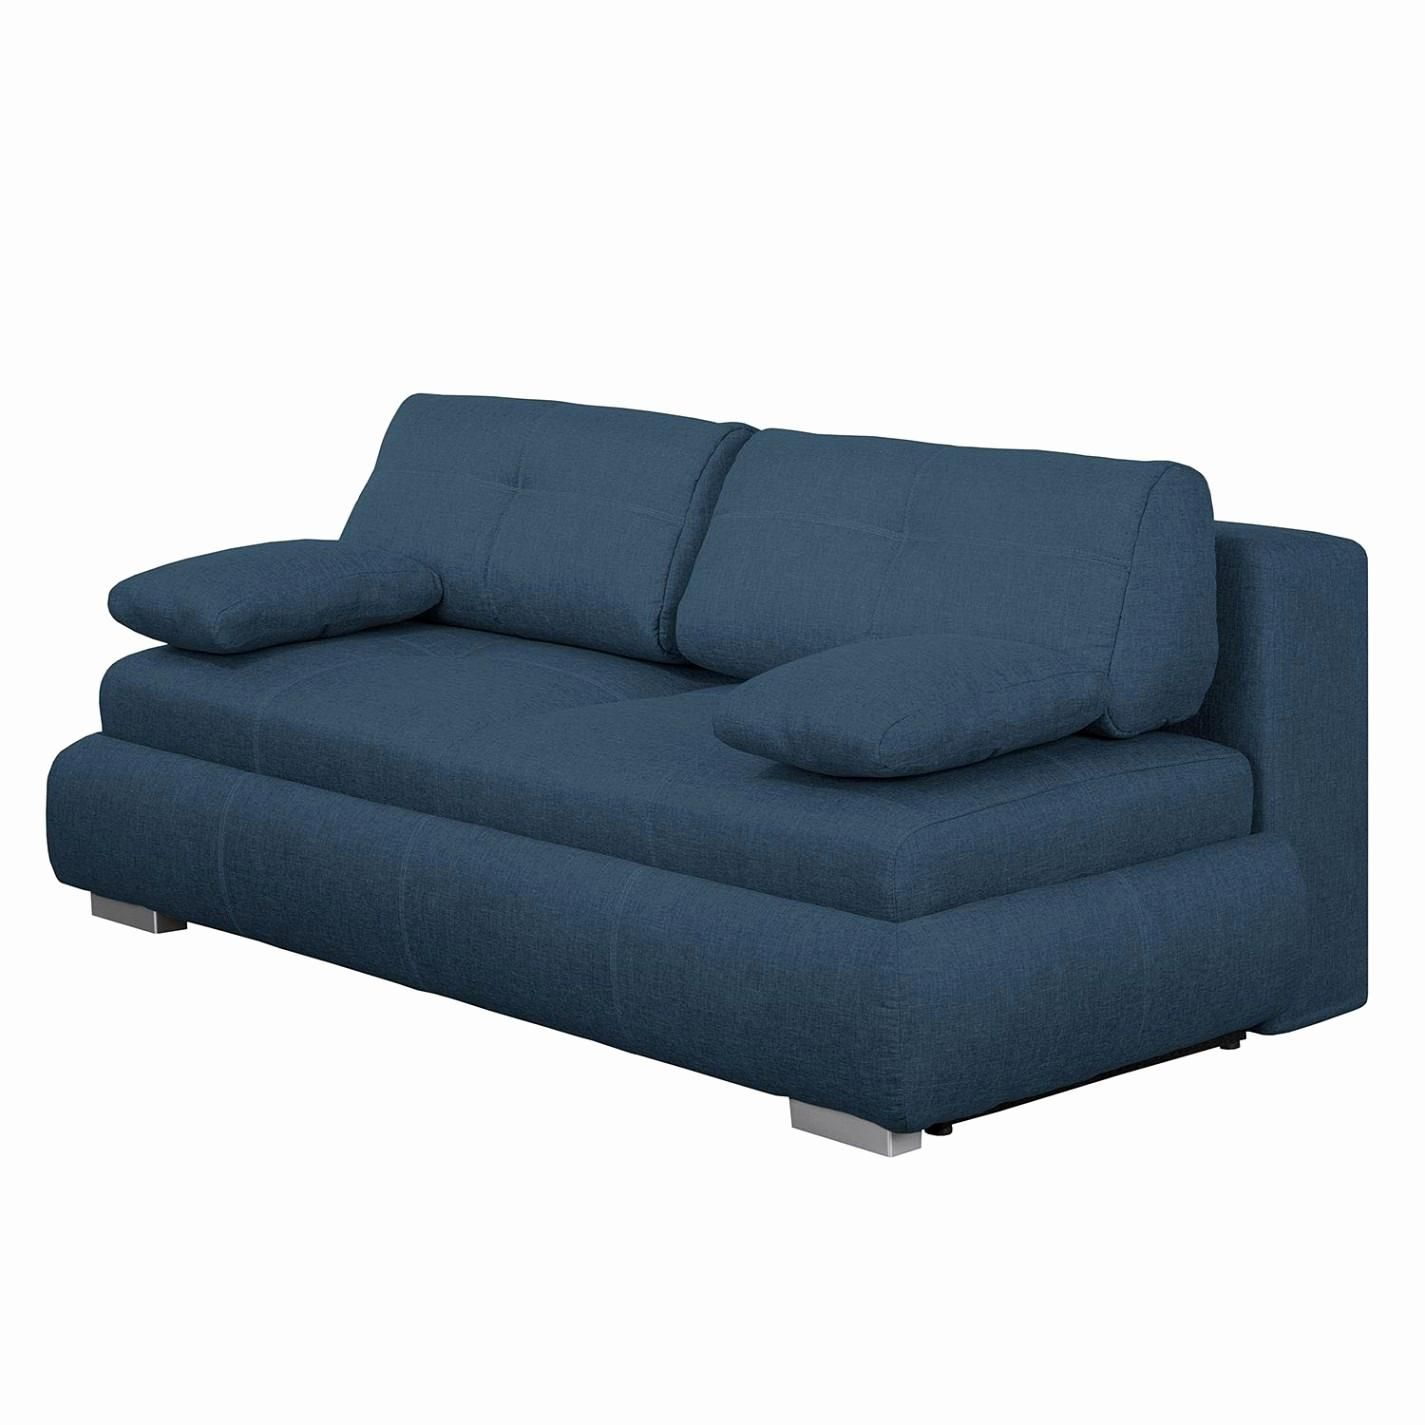 Fresh Comfortable Futon sofa Bed | GOME | Sofa furniture ...